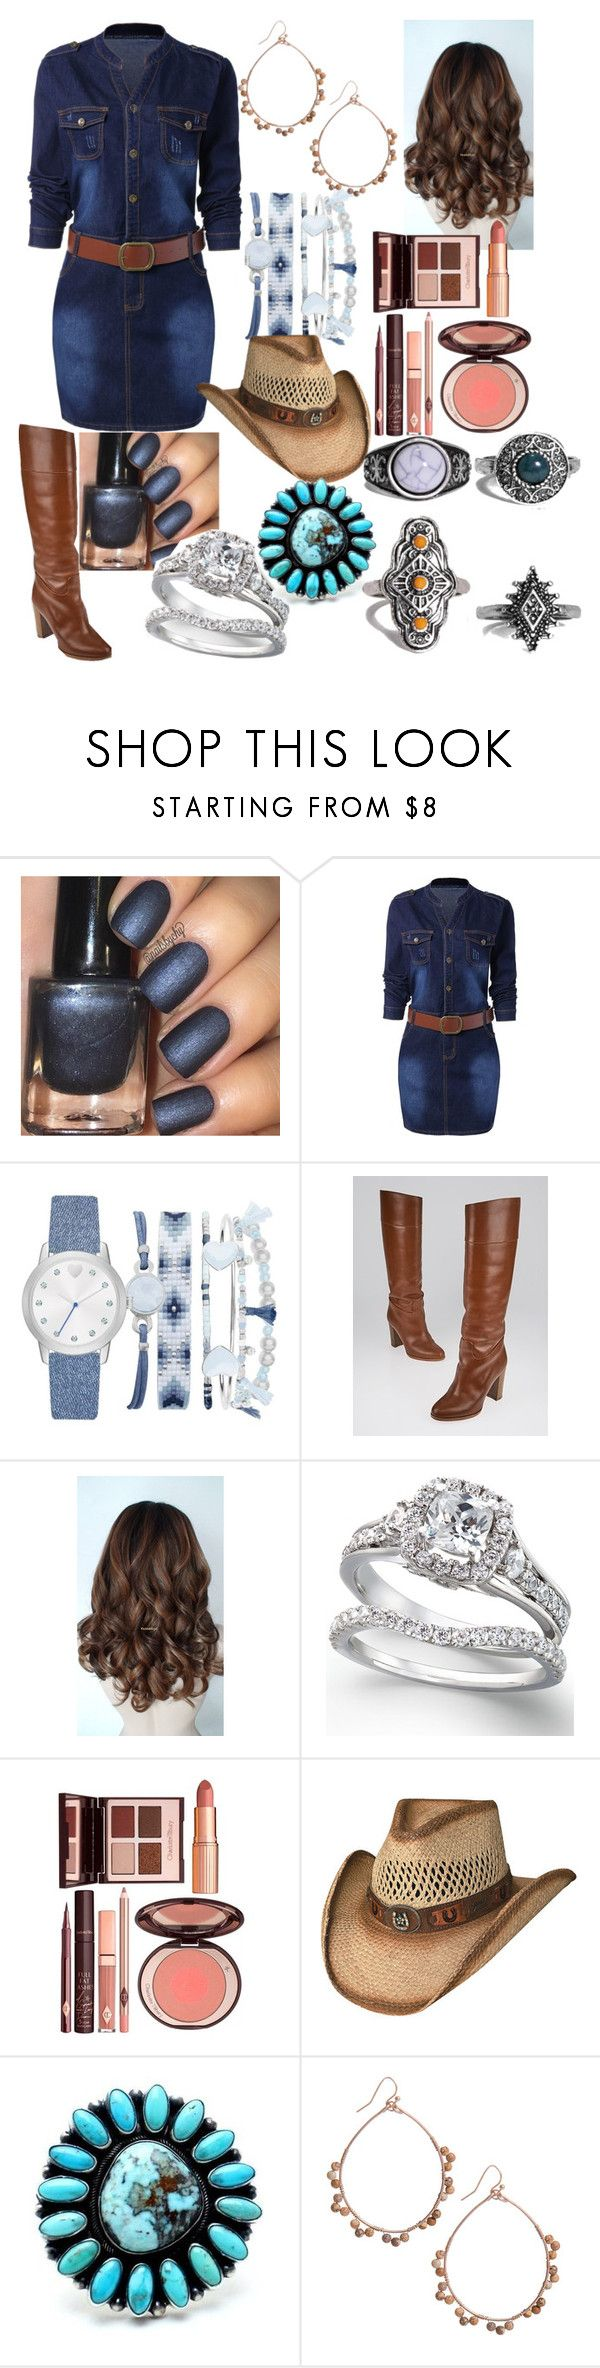 """Singing ""Stand By Your Man"""" by kee199905 ❤ liked on Polyvore featuring A.X.N.Y., Christian Louboutin, Charlotte Tilbury, Child Of Wild and Boohoo"